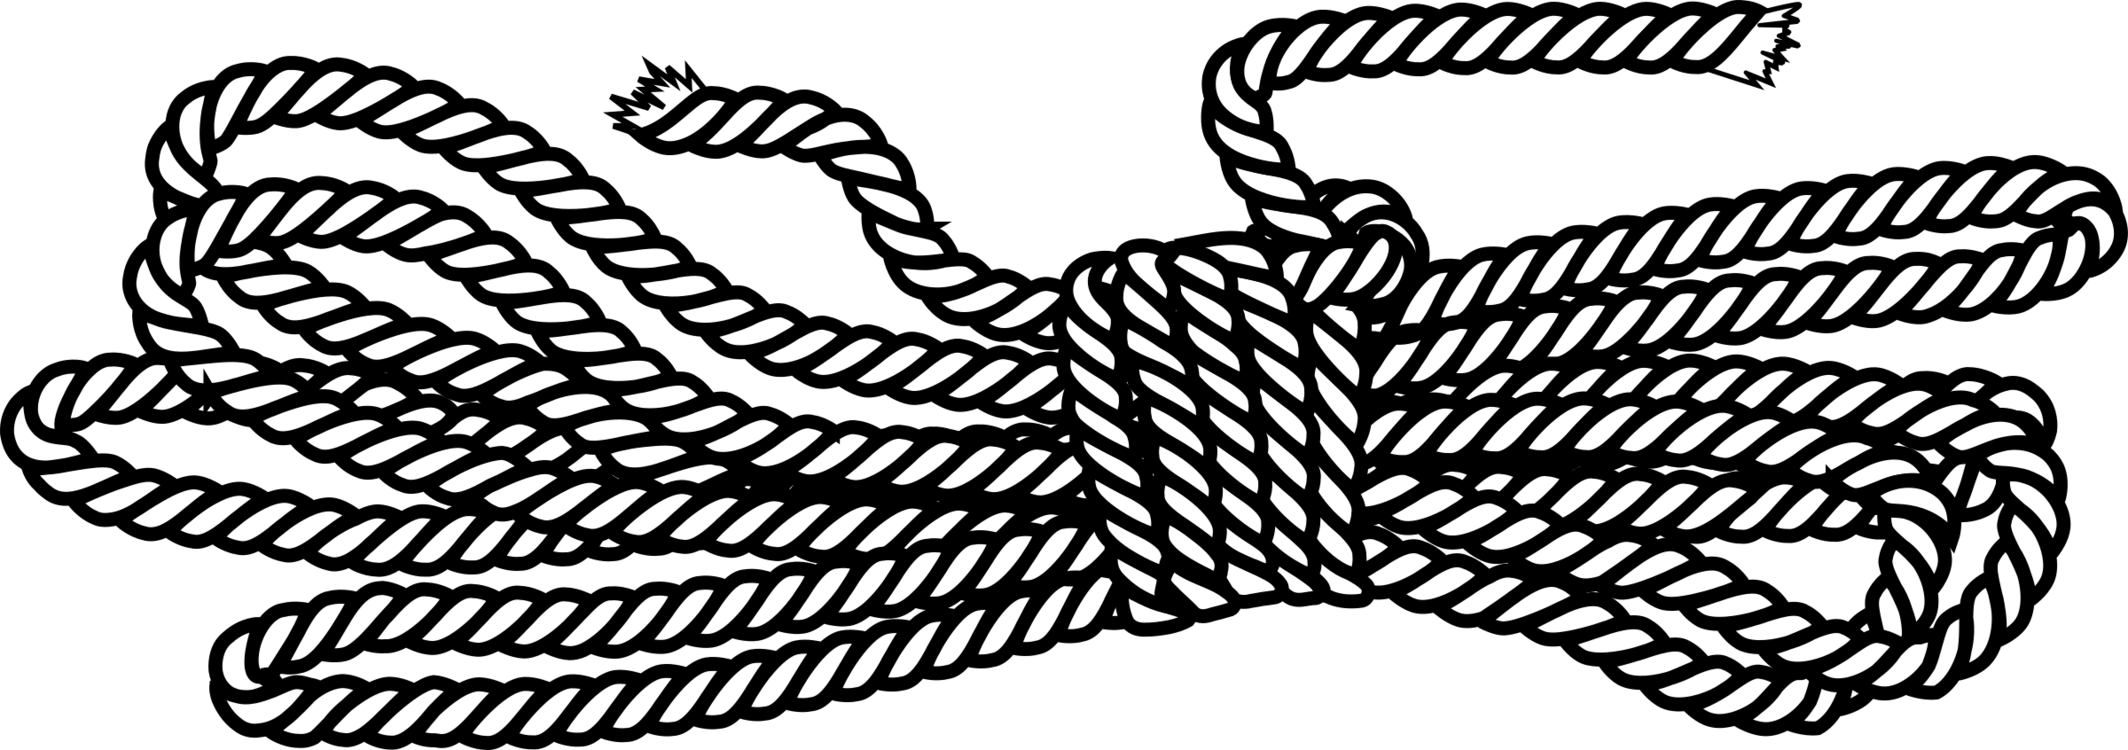 Coil drawing clipart. Butterfly line art visual